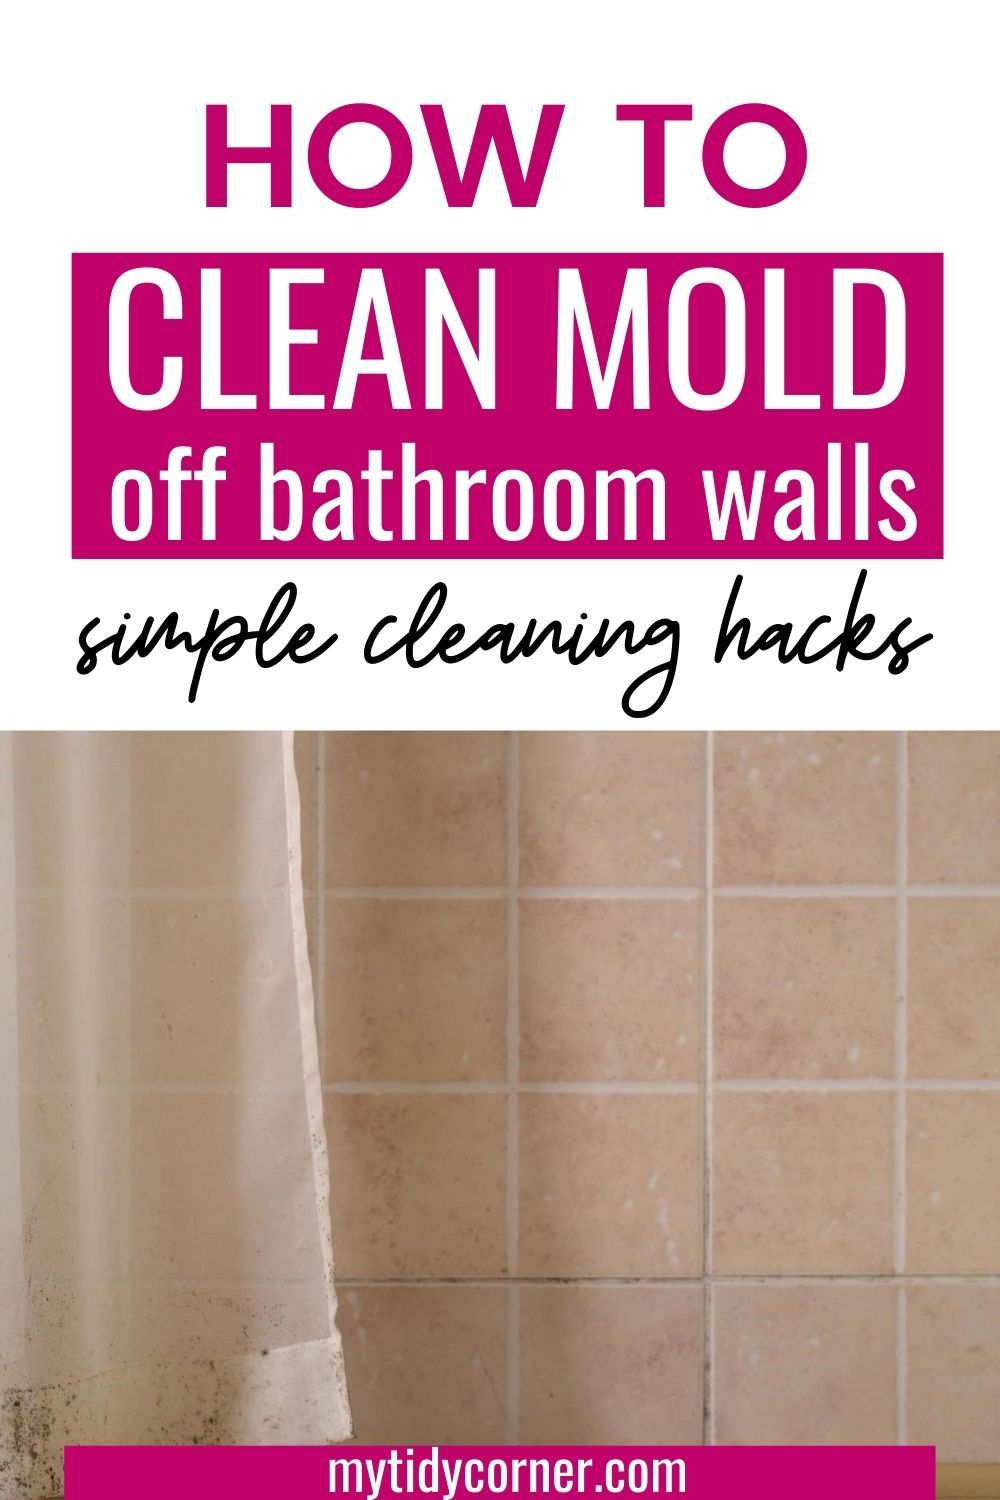 How to Clean Mold from Walls in Bathroom Simple Cleaning